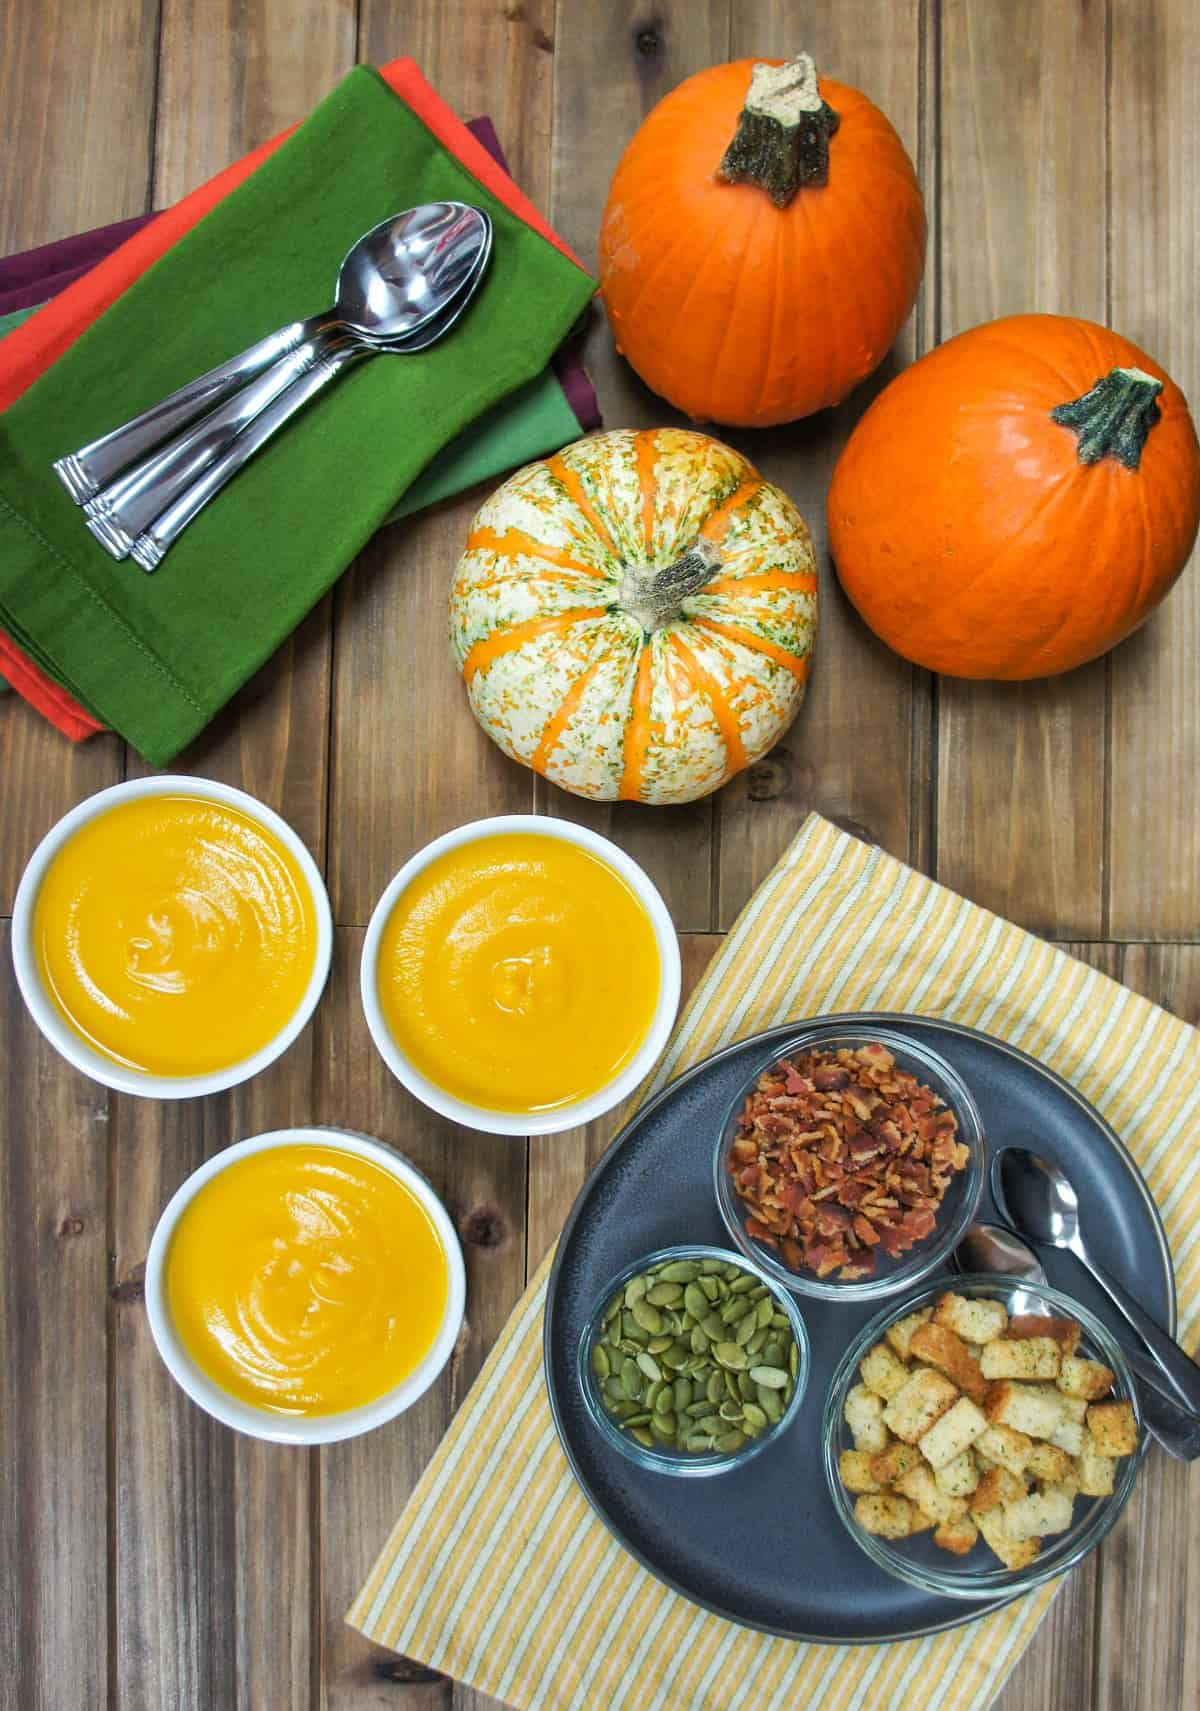 Three small bowls of soup set on a wood table with the garnishes in small bowls to the right, decorative pumpkins, linens and spoons to the left.